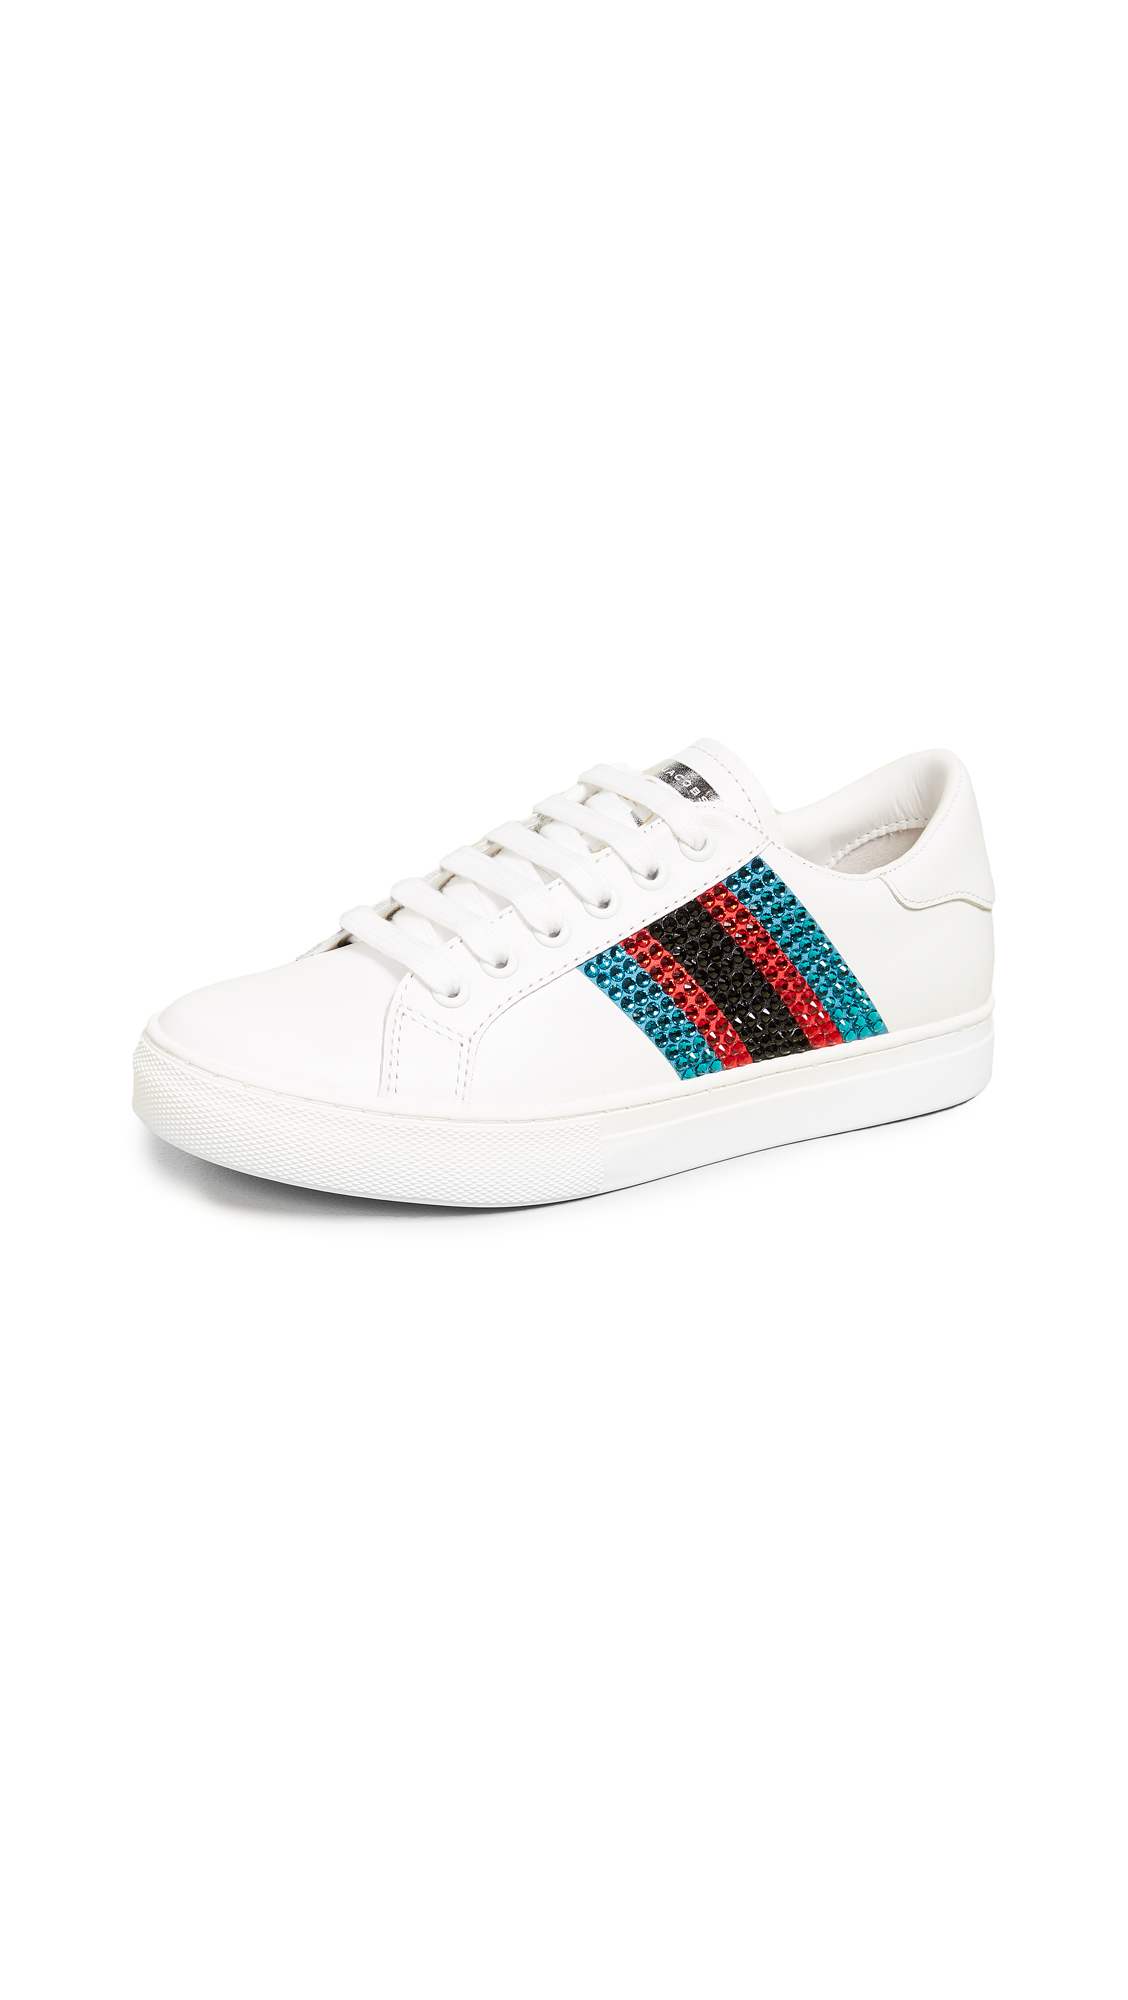 Marc Jacobs Empire Strass Low Top Sneakers - Blue Multi